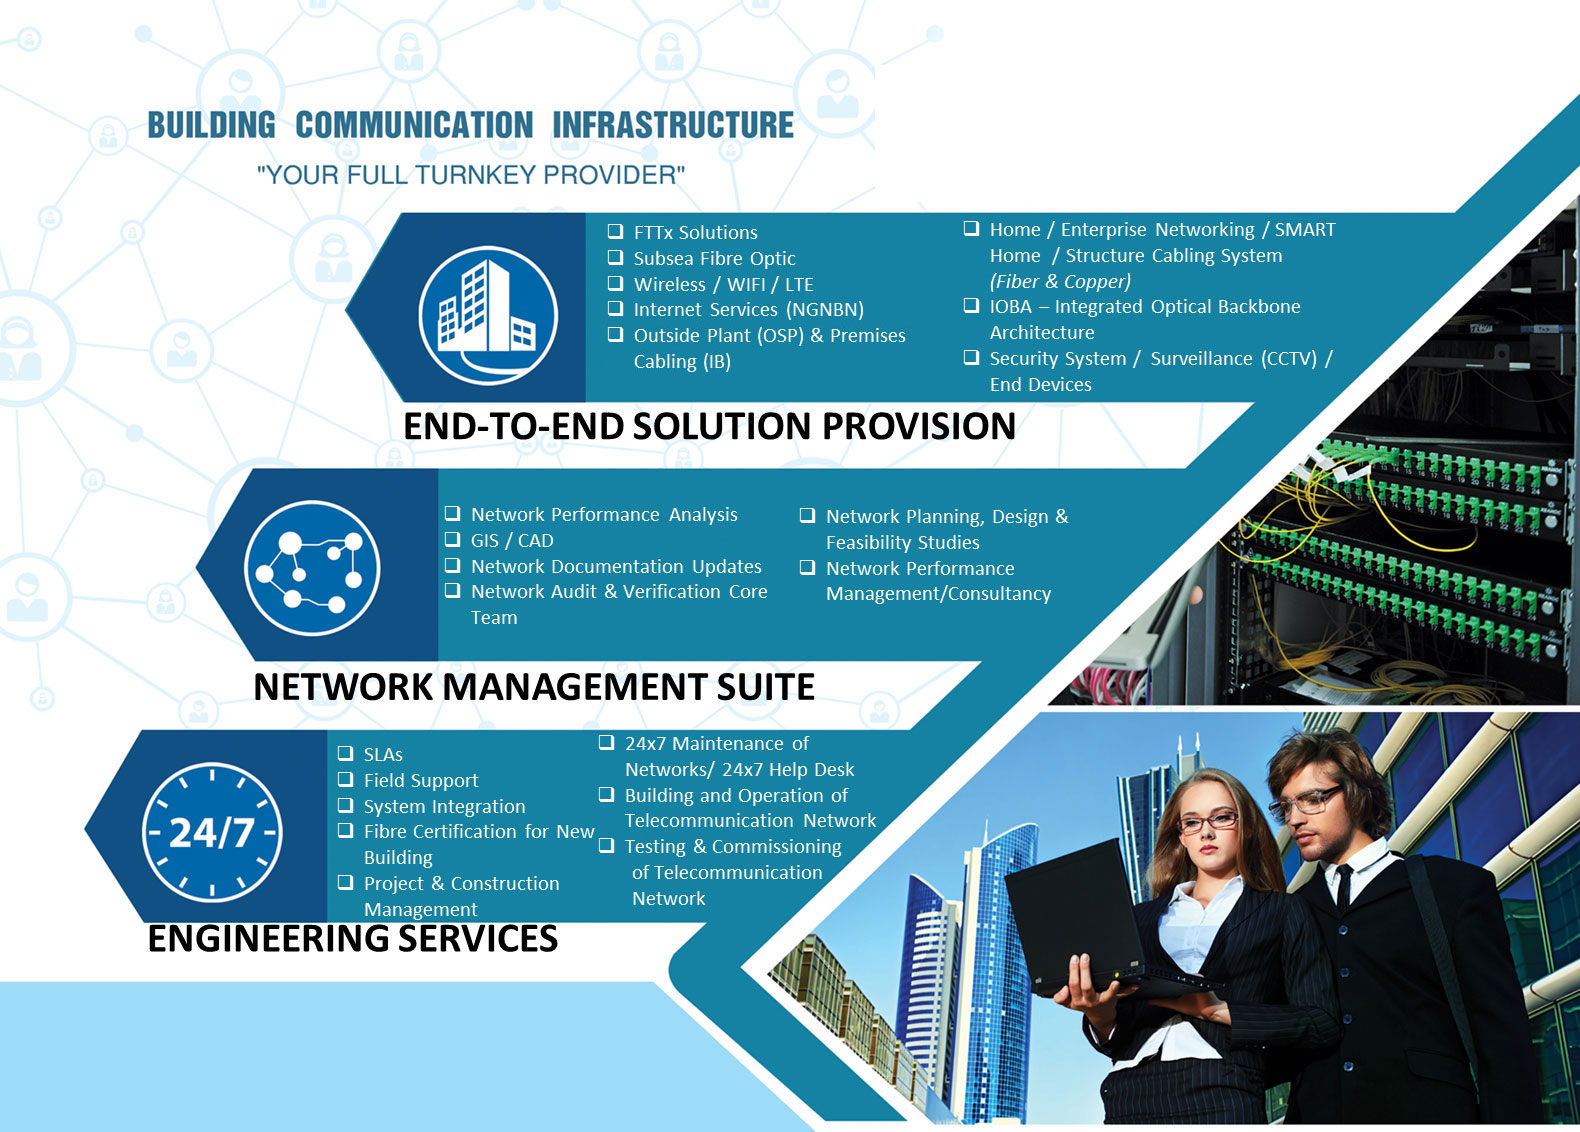 BUILDING COMMUNICATION INFRASTRUCTURE